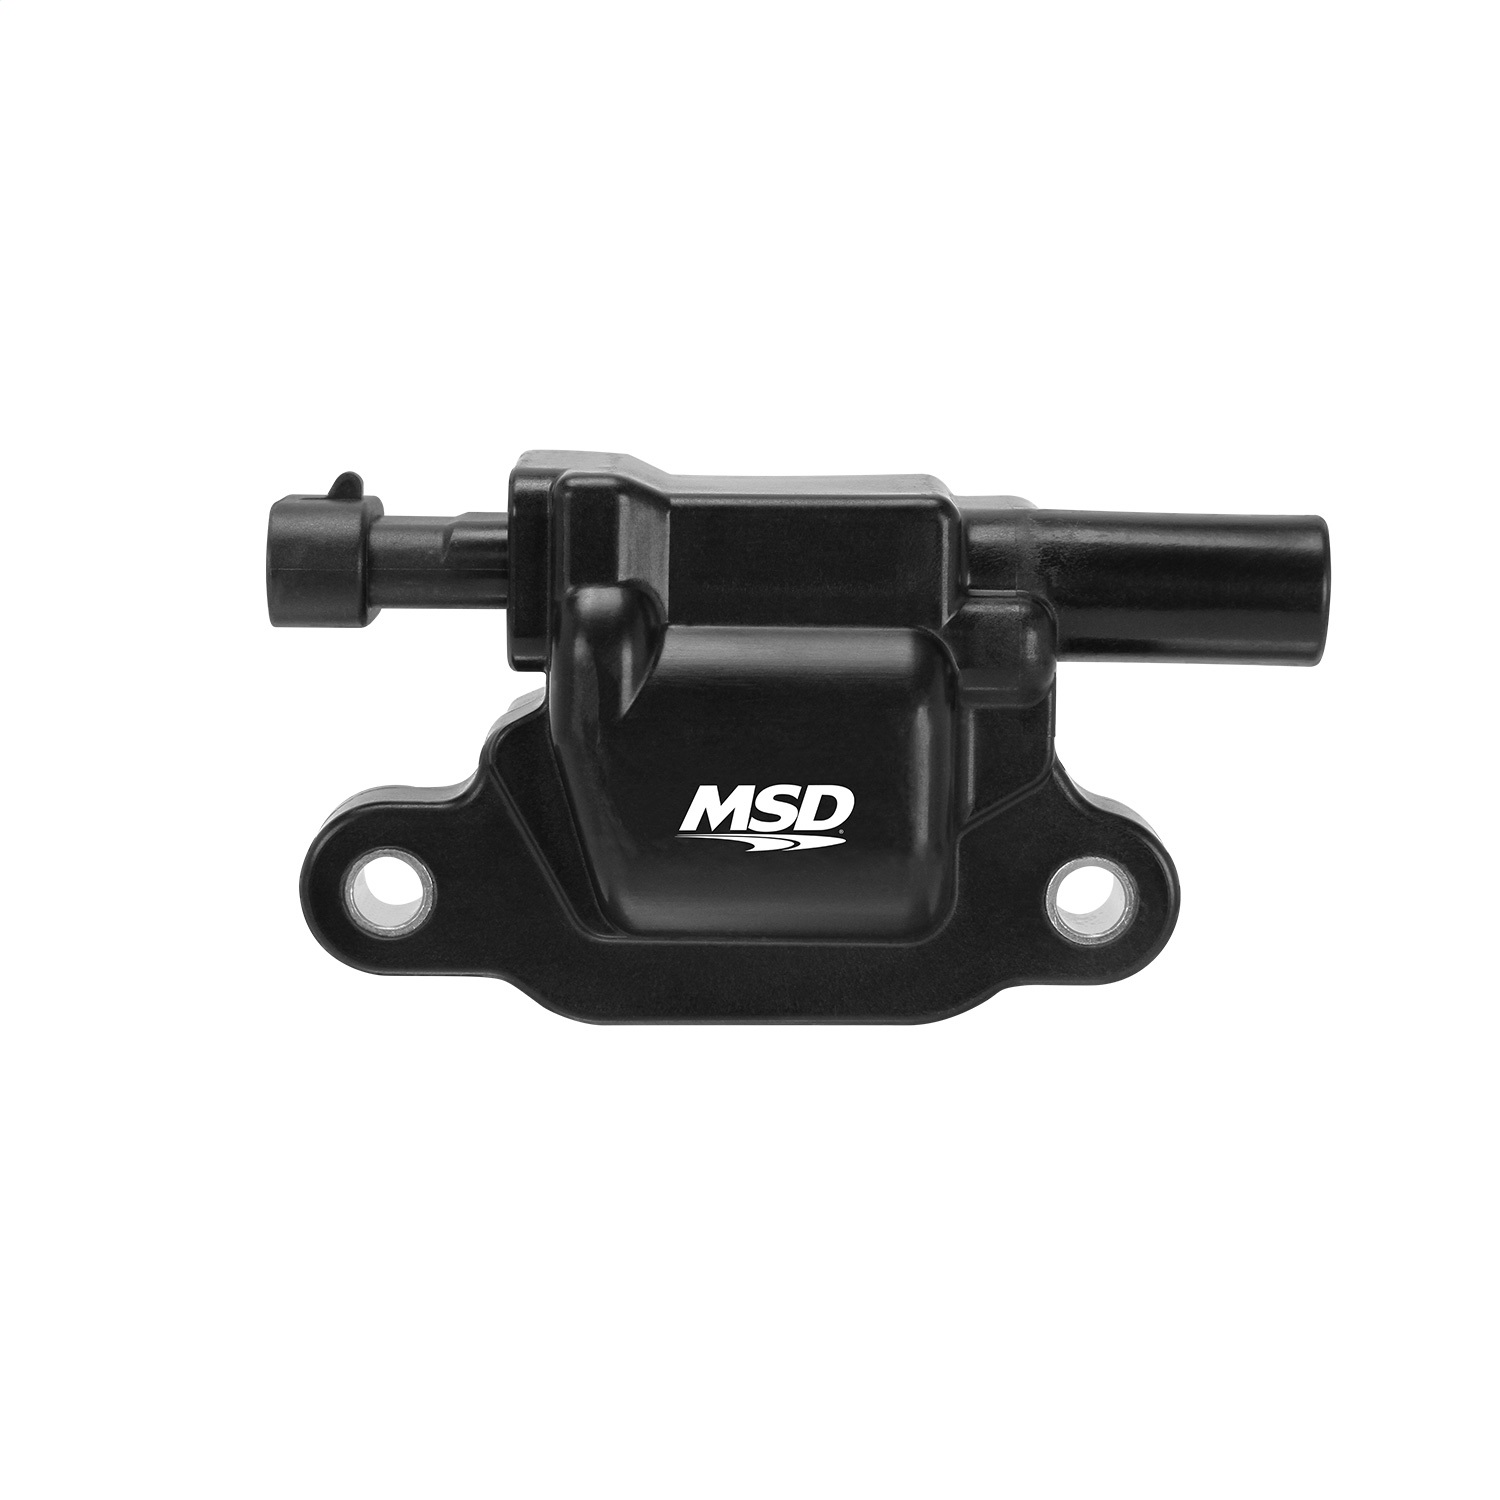 MSD Ignition 82653 Direct Ignition Coil